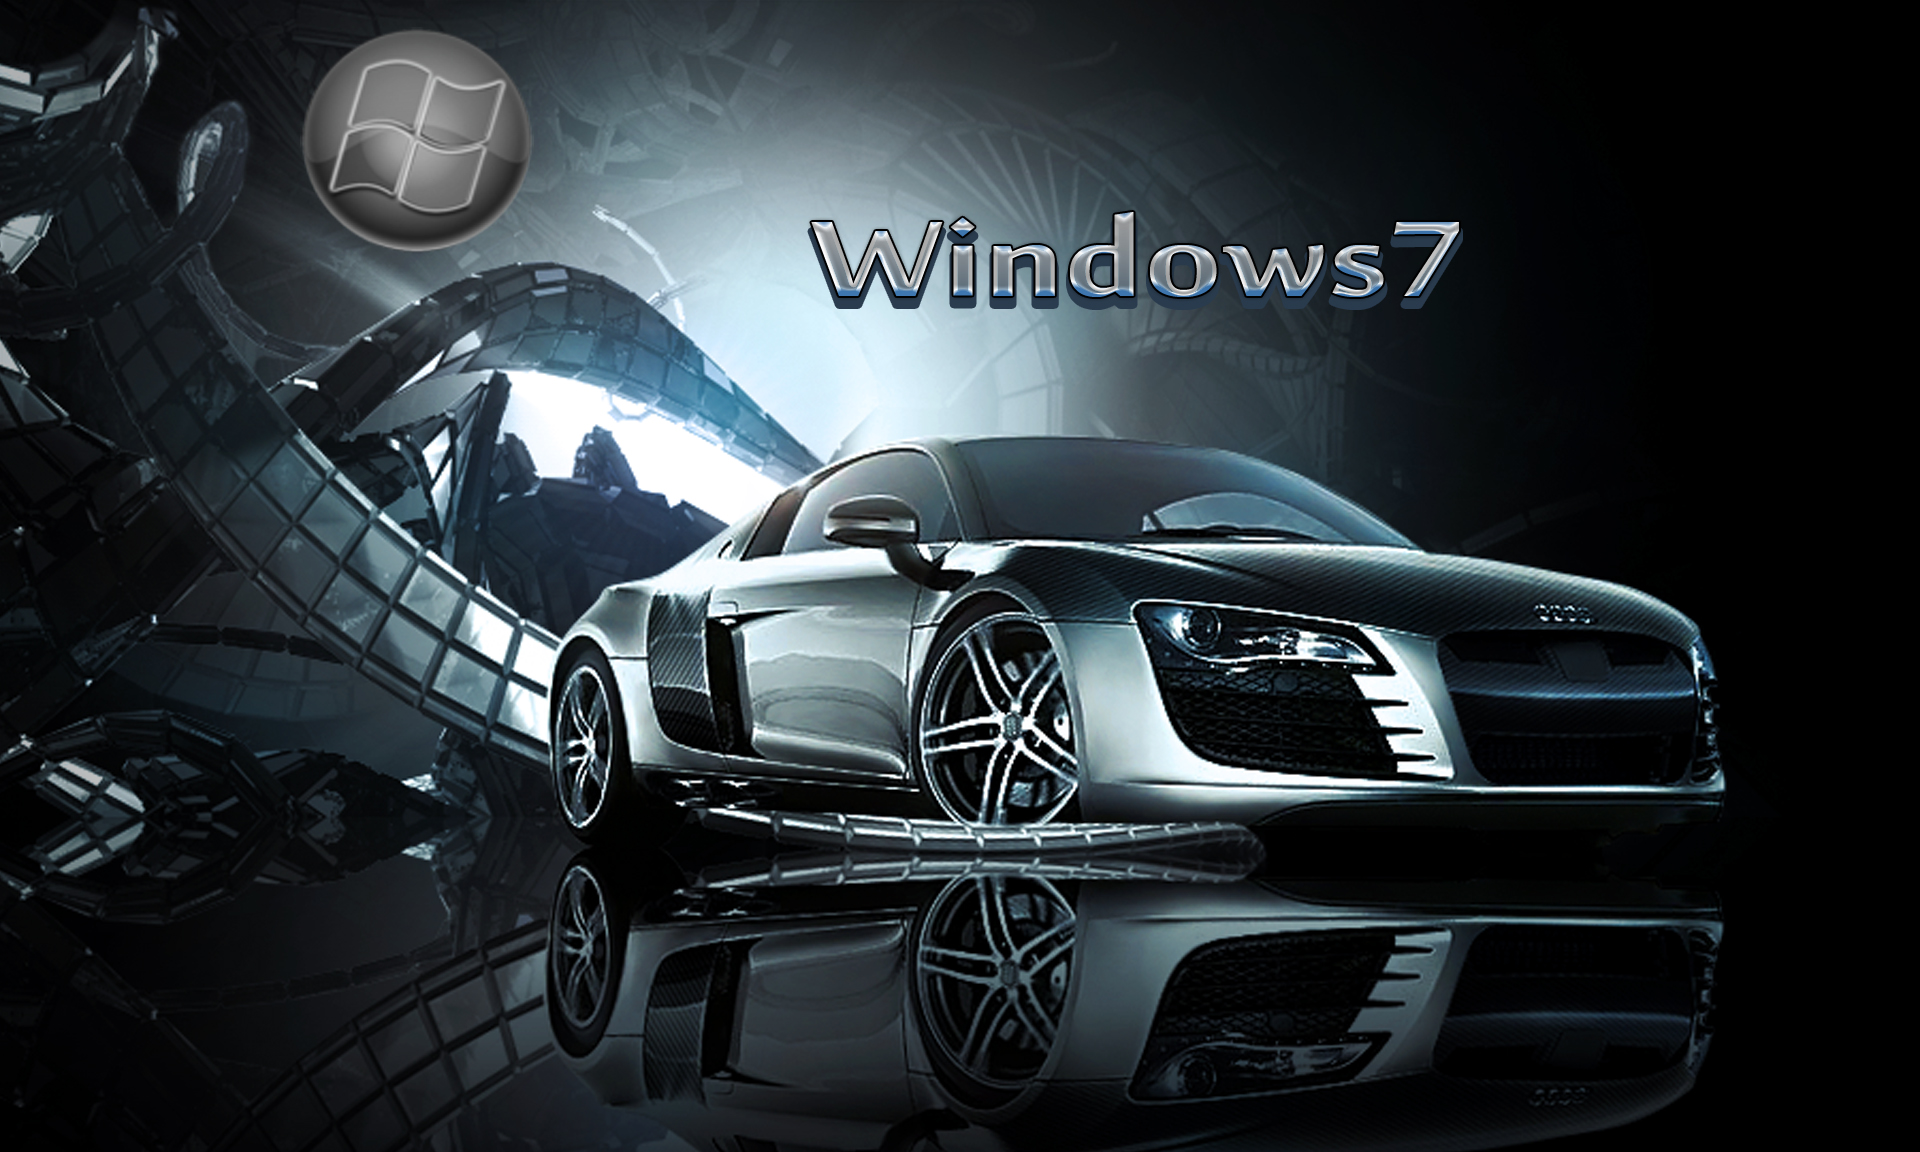 Download windows 7 themes wallpapers download daily - Car wallpaper for windows 7 ...